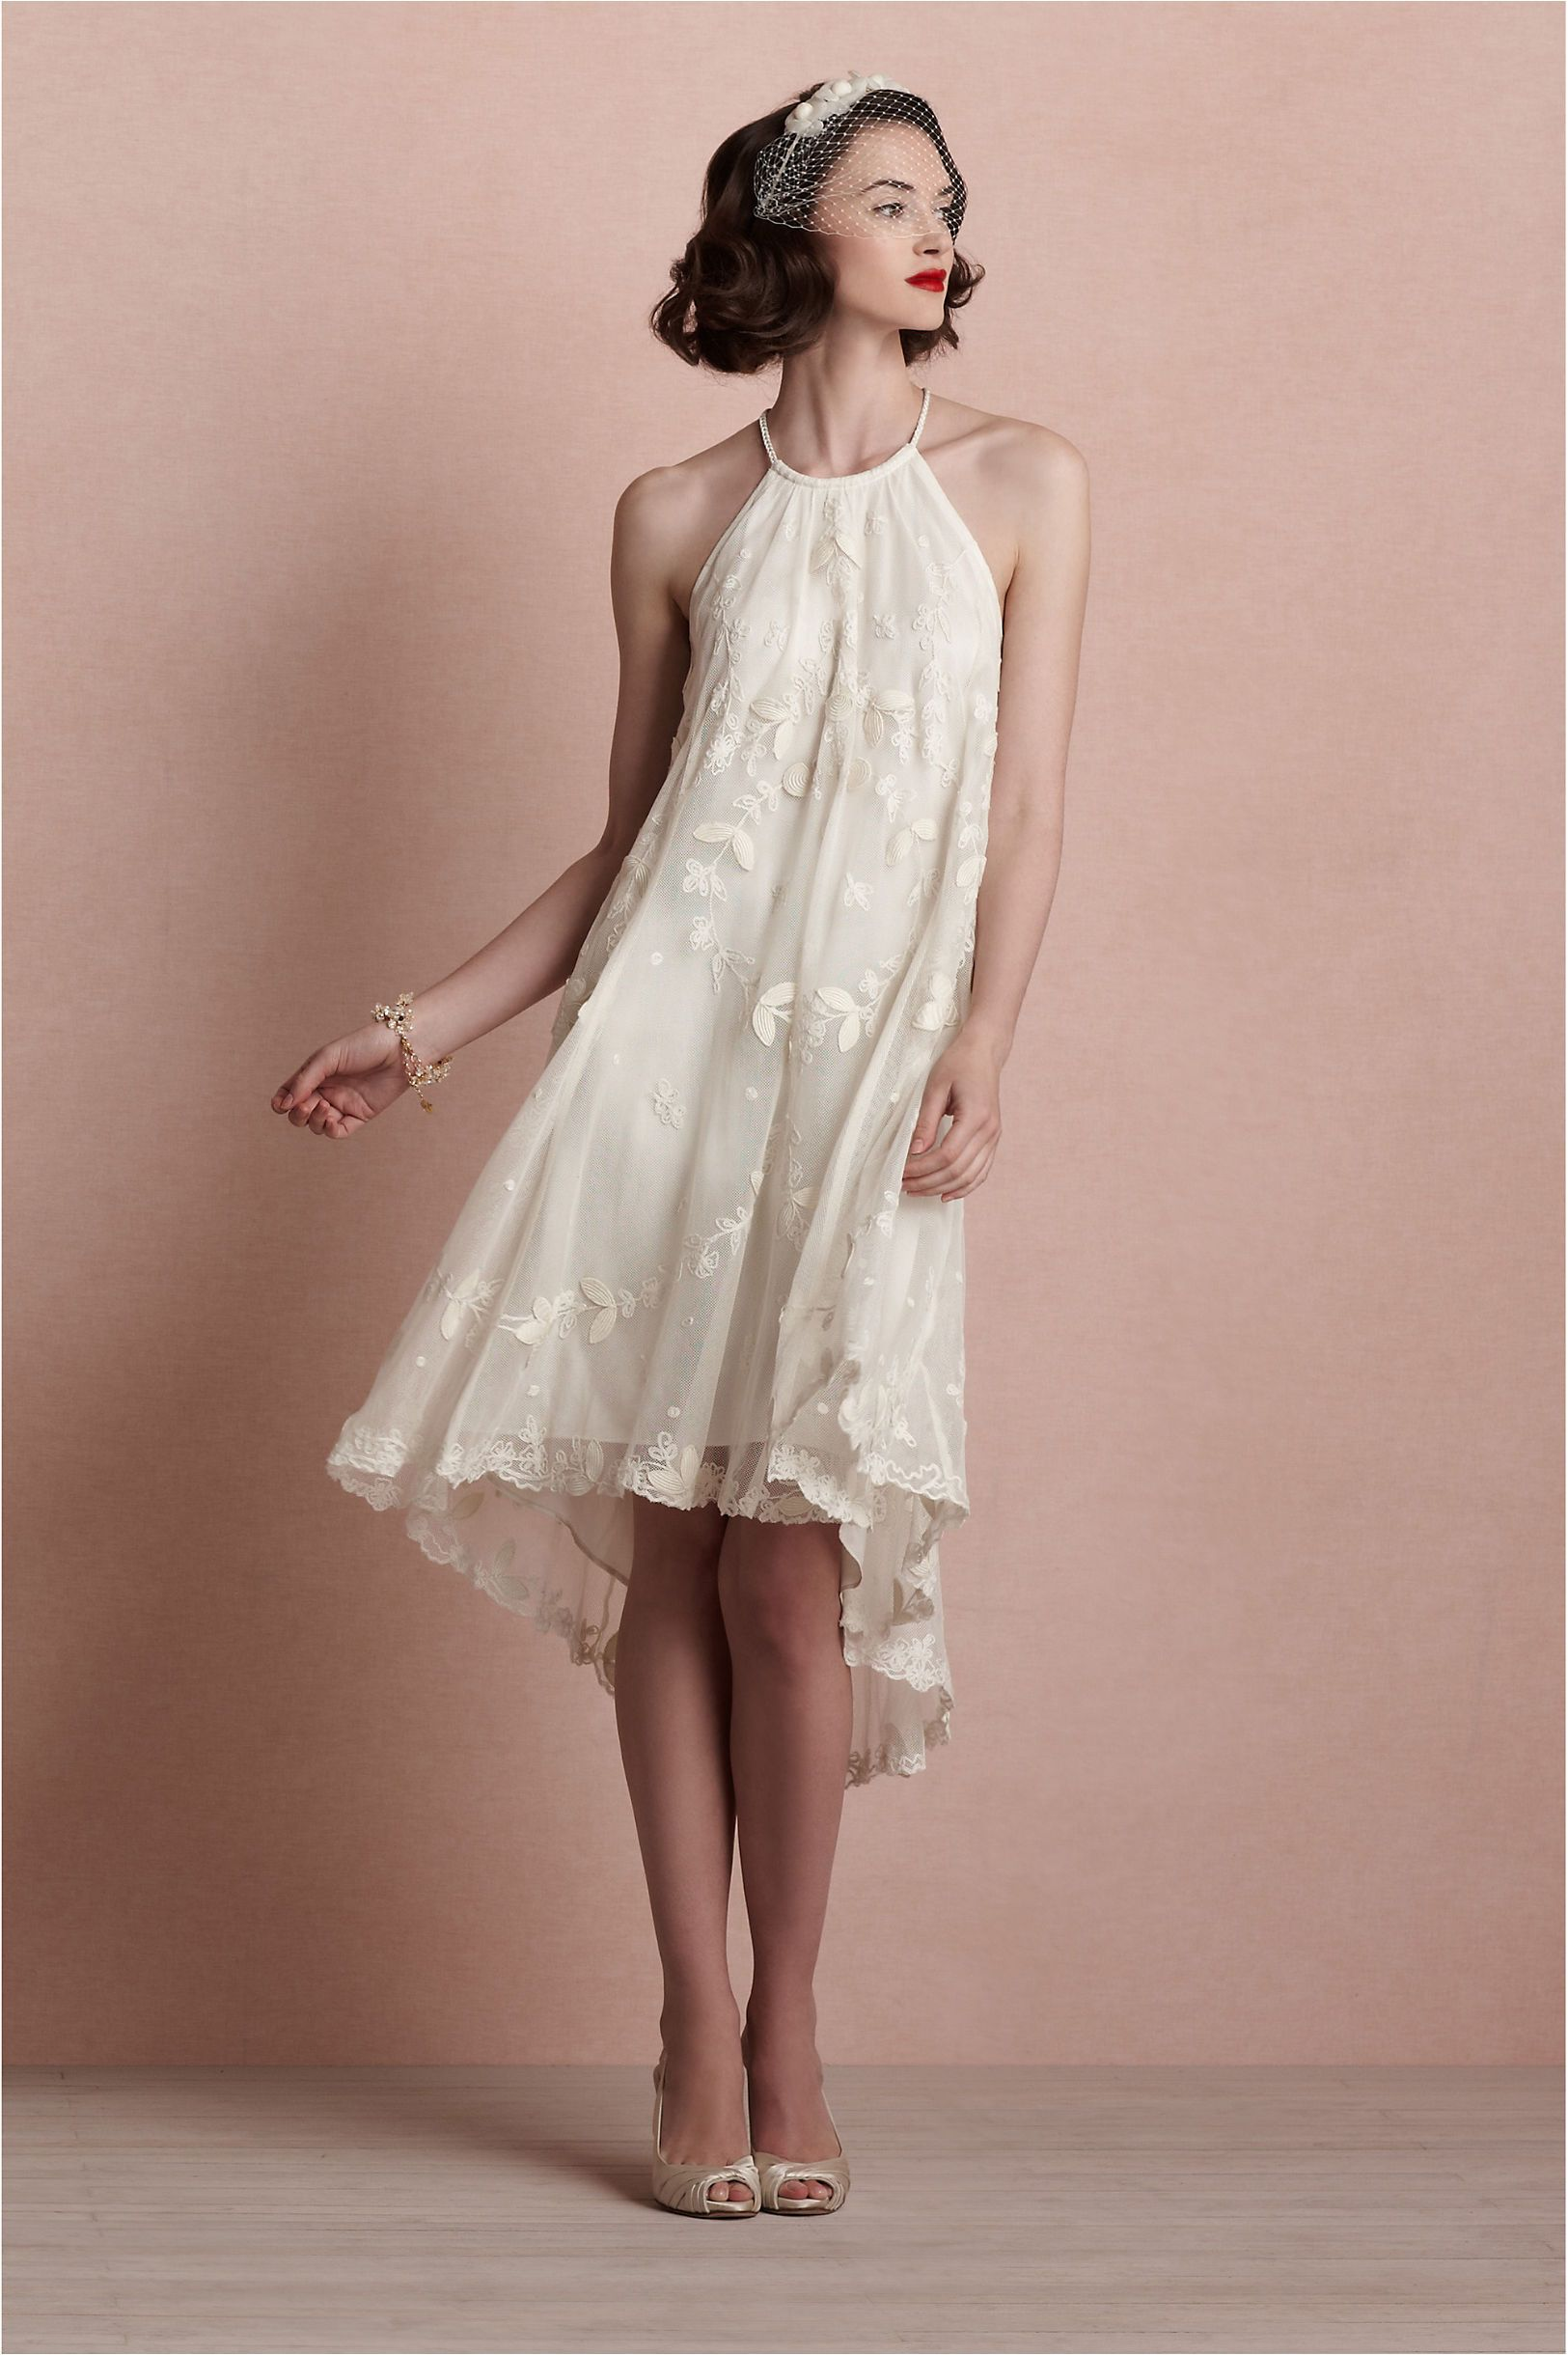 Kauai Dress in SHOP The Bride Wedding Dresses at BHLDN - If I ever ...